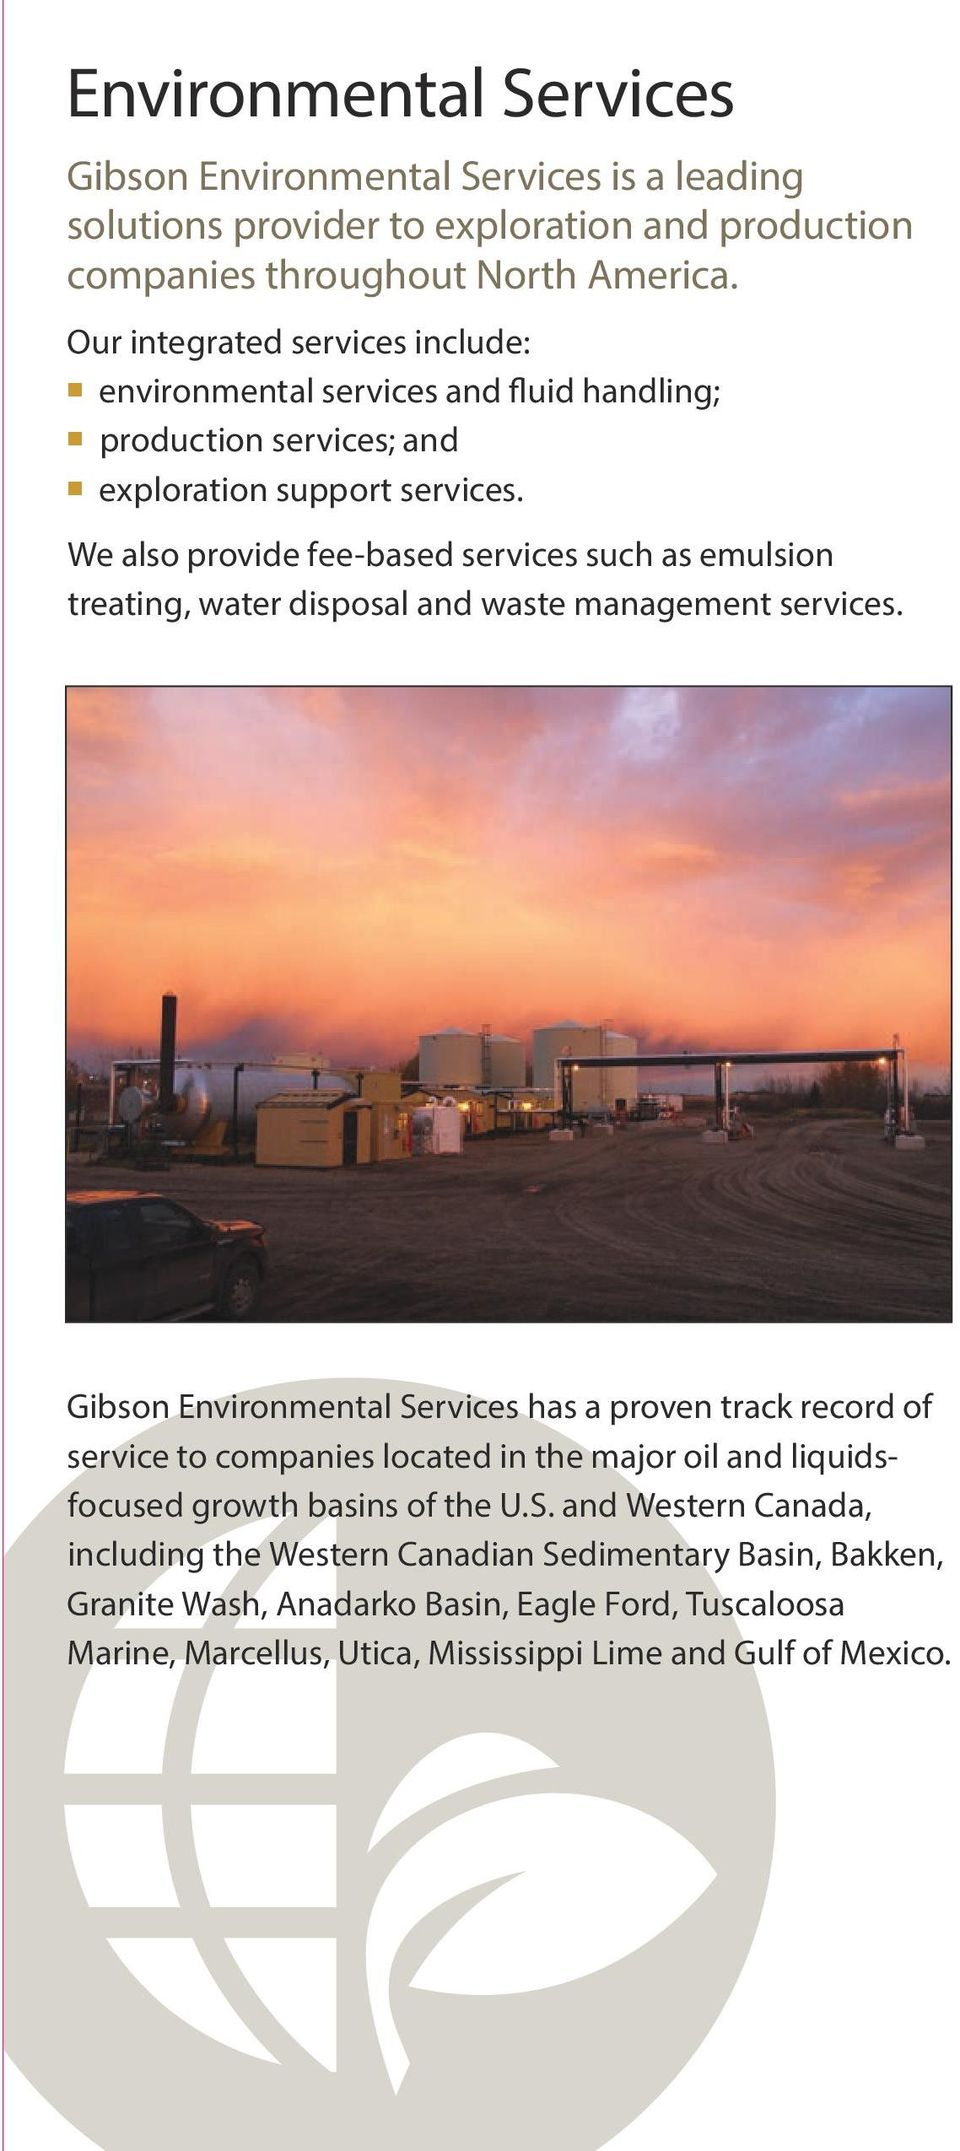 We also provide fee-based services such as emulsion treating, water disposal and waste management services.